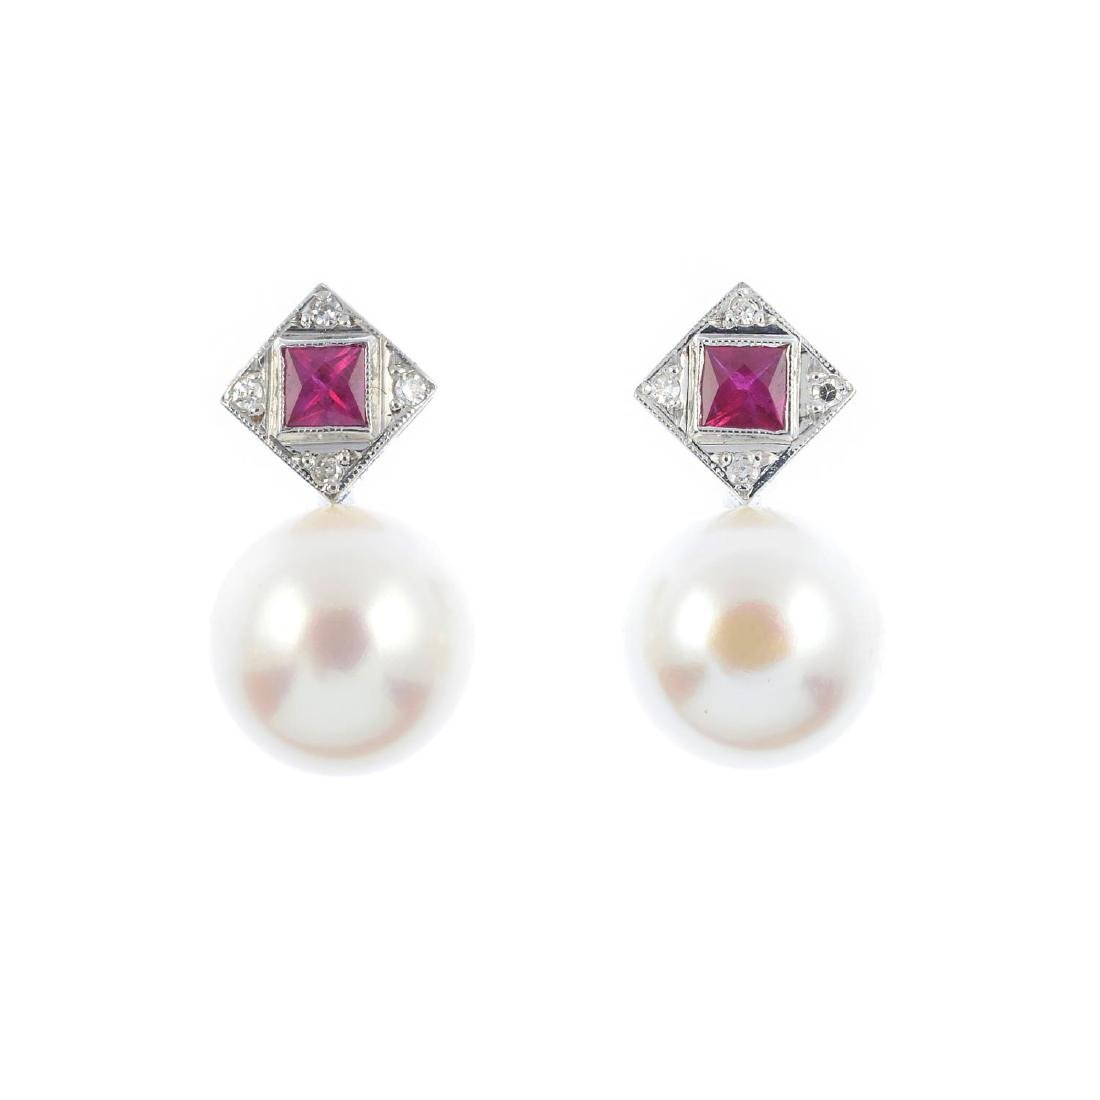 A pair of cultured pearl and gem-set earrings. Each